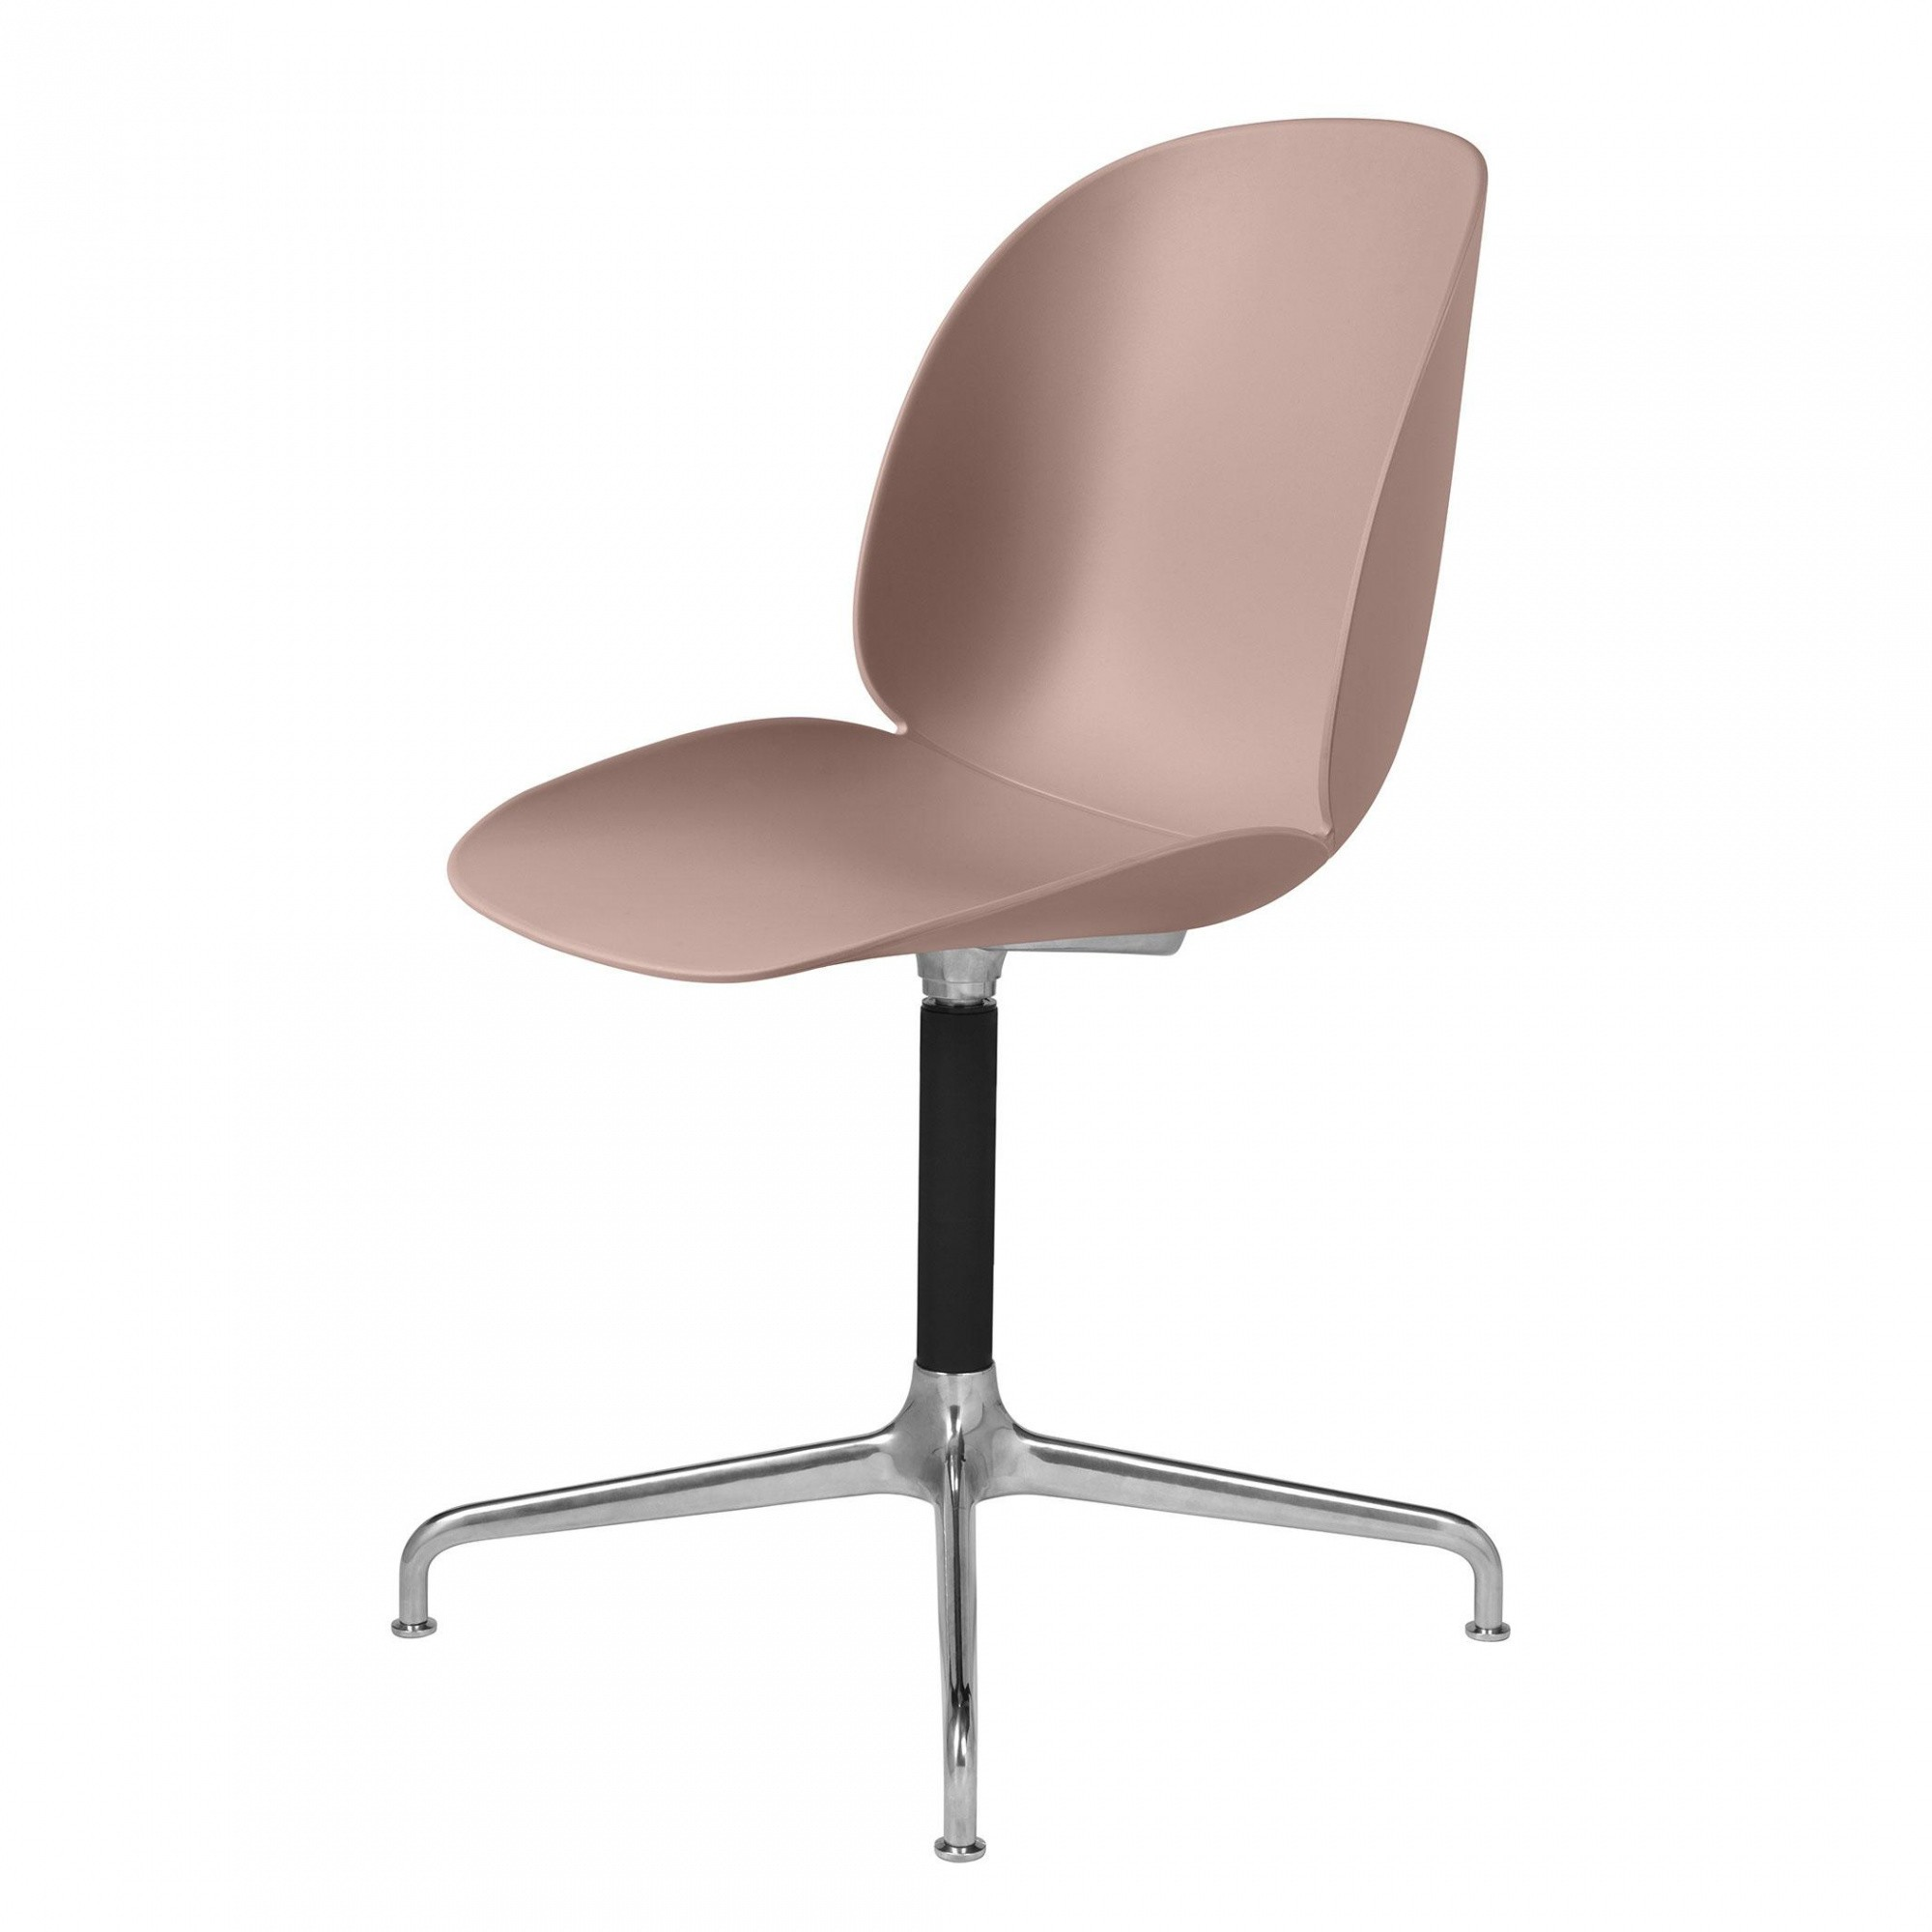 Gubi   Beetle Dining Chair Swivel Chair With Cross Frame   Sweet Pink/seat  Polypropylene